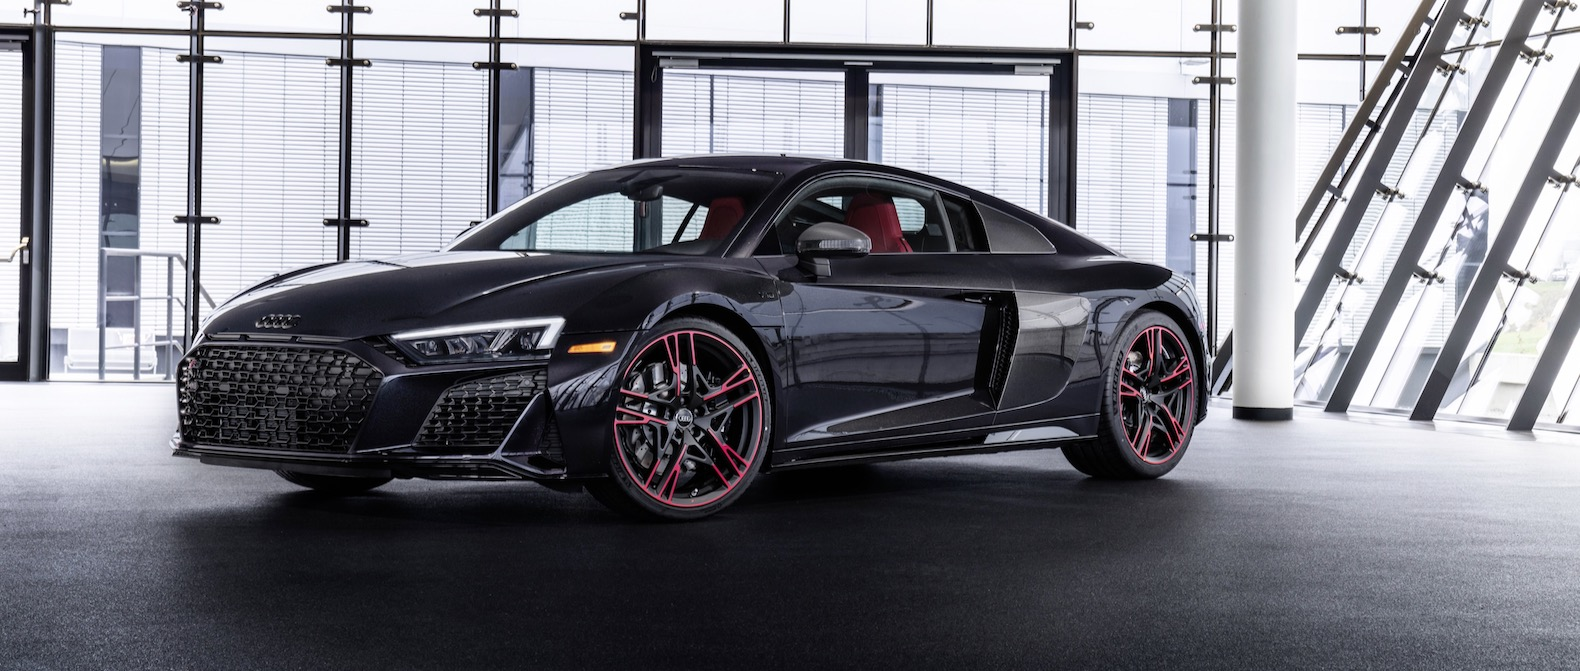 2021 audi r8 panther edition is limited to 30 units | the